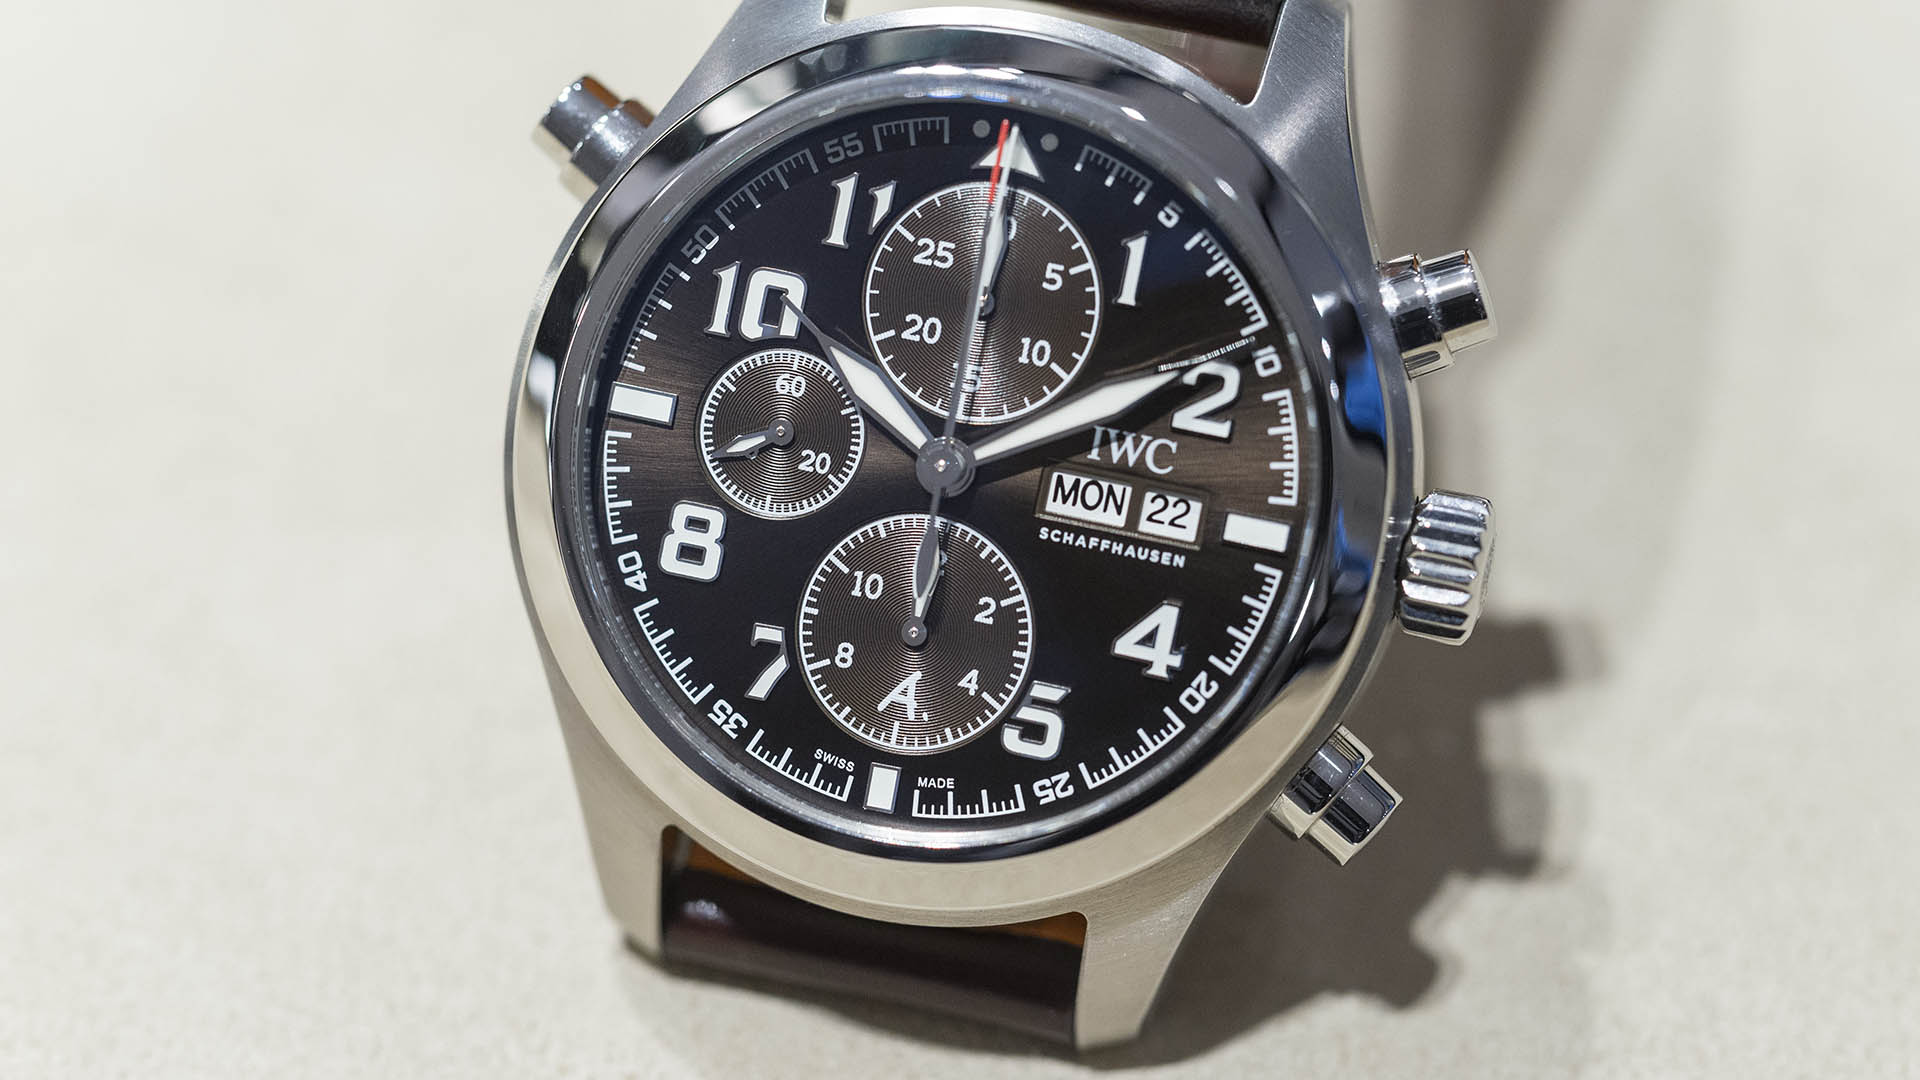 -WC_DOUBLE_CHRONOGRAPH_ED-T-ON_ANTO-NE_DE_SA-NT_EXUPE-RY_REFERENCE_3718-1-.jpg